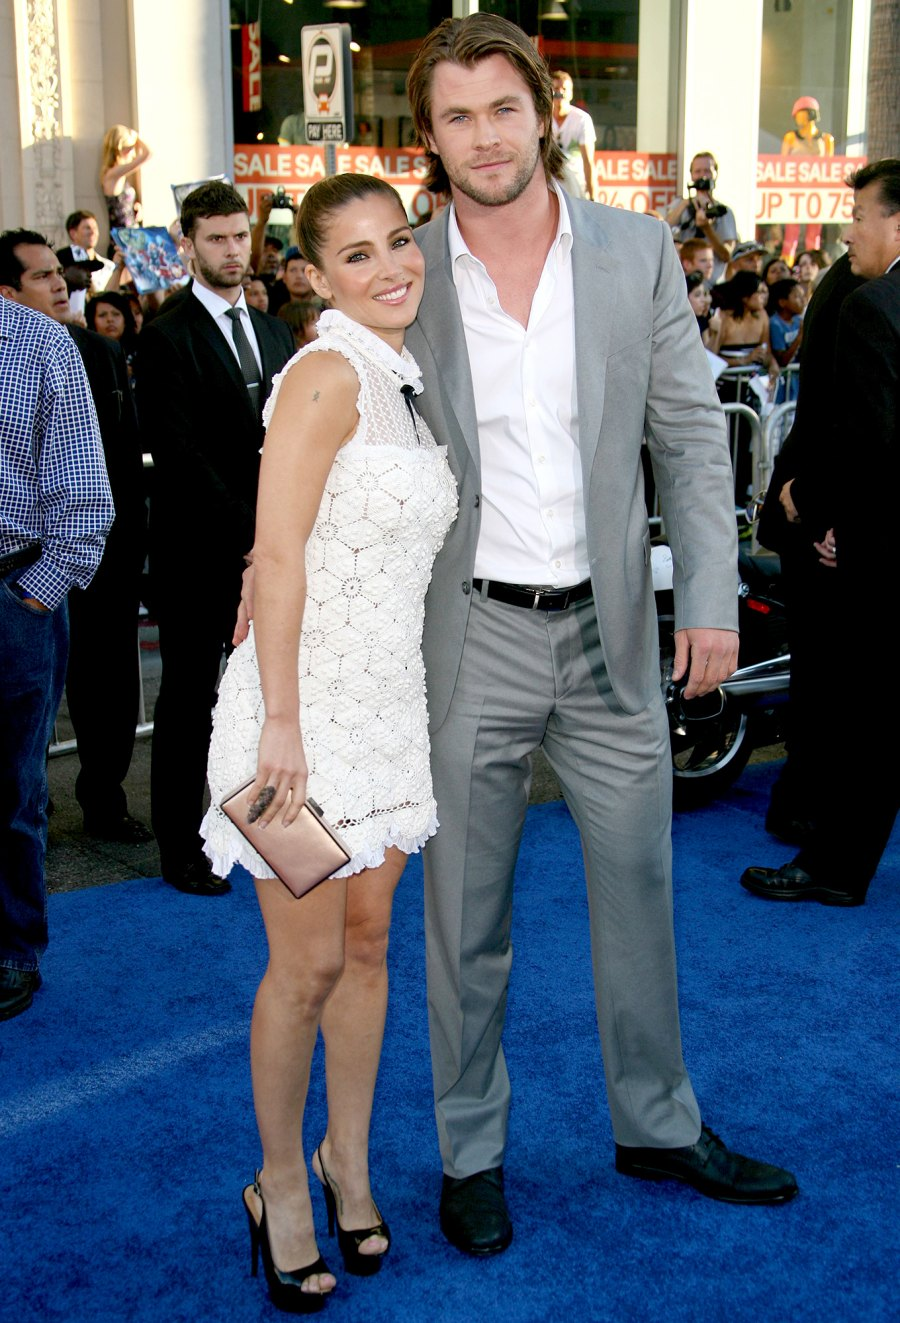 2 Married in December 2010 Chris Hemsworth and Elsa Pataky